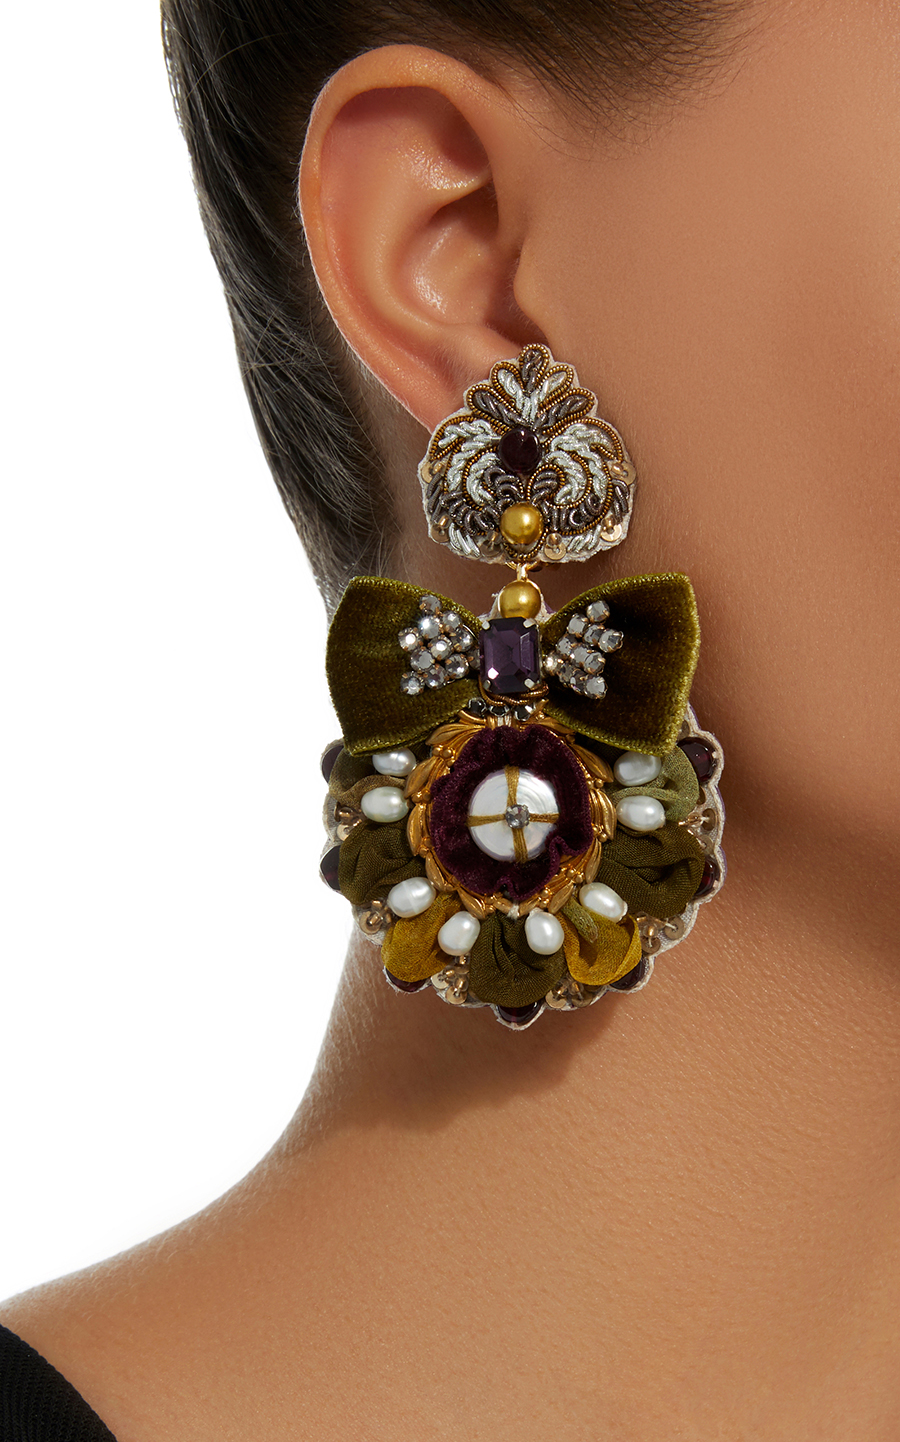 14K Gold-Plated Mother of Pearl and Crystal Ranjana Khan Earrings